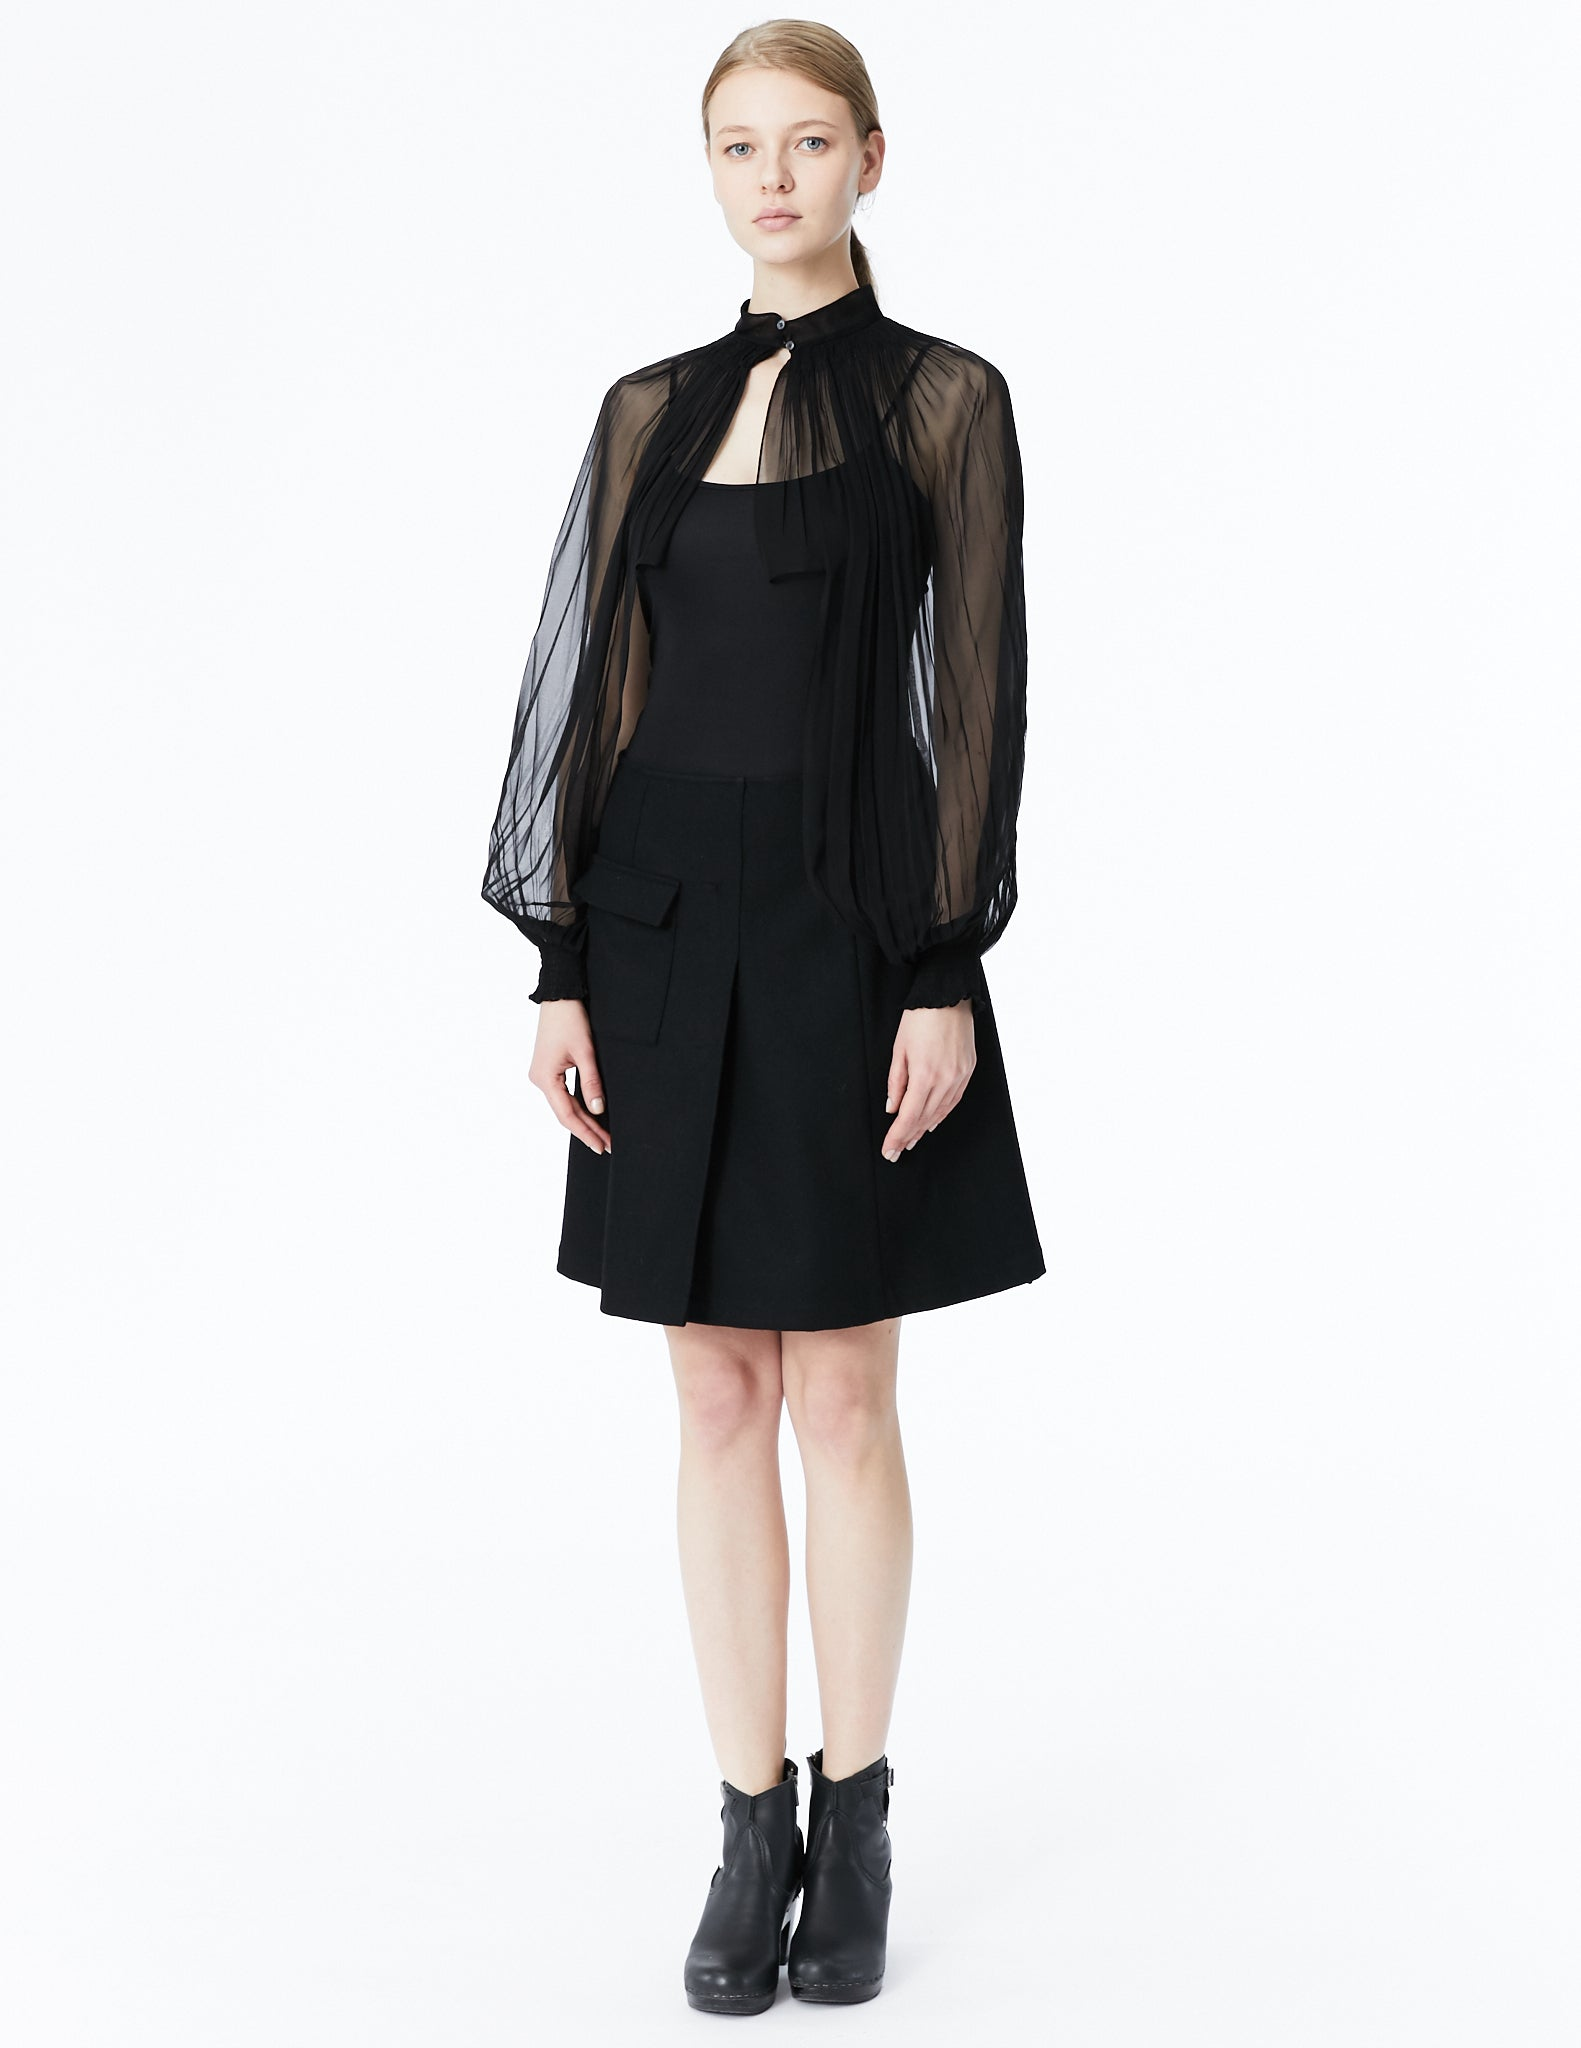 morgane le fay long chiffon sleeves with high neck and front closure